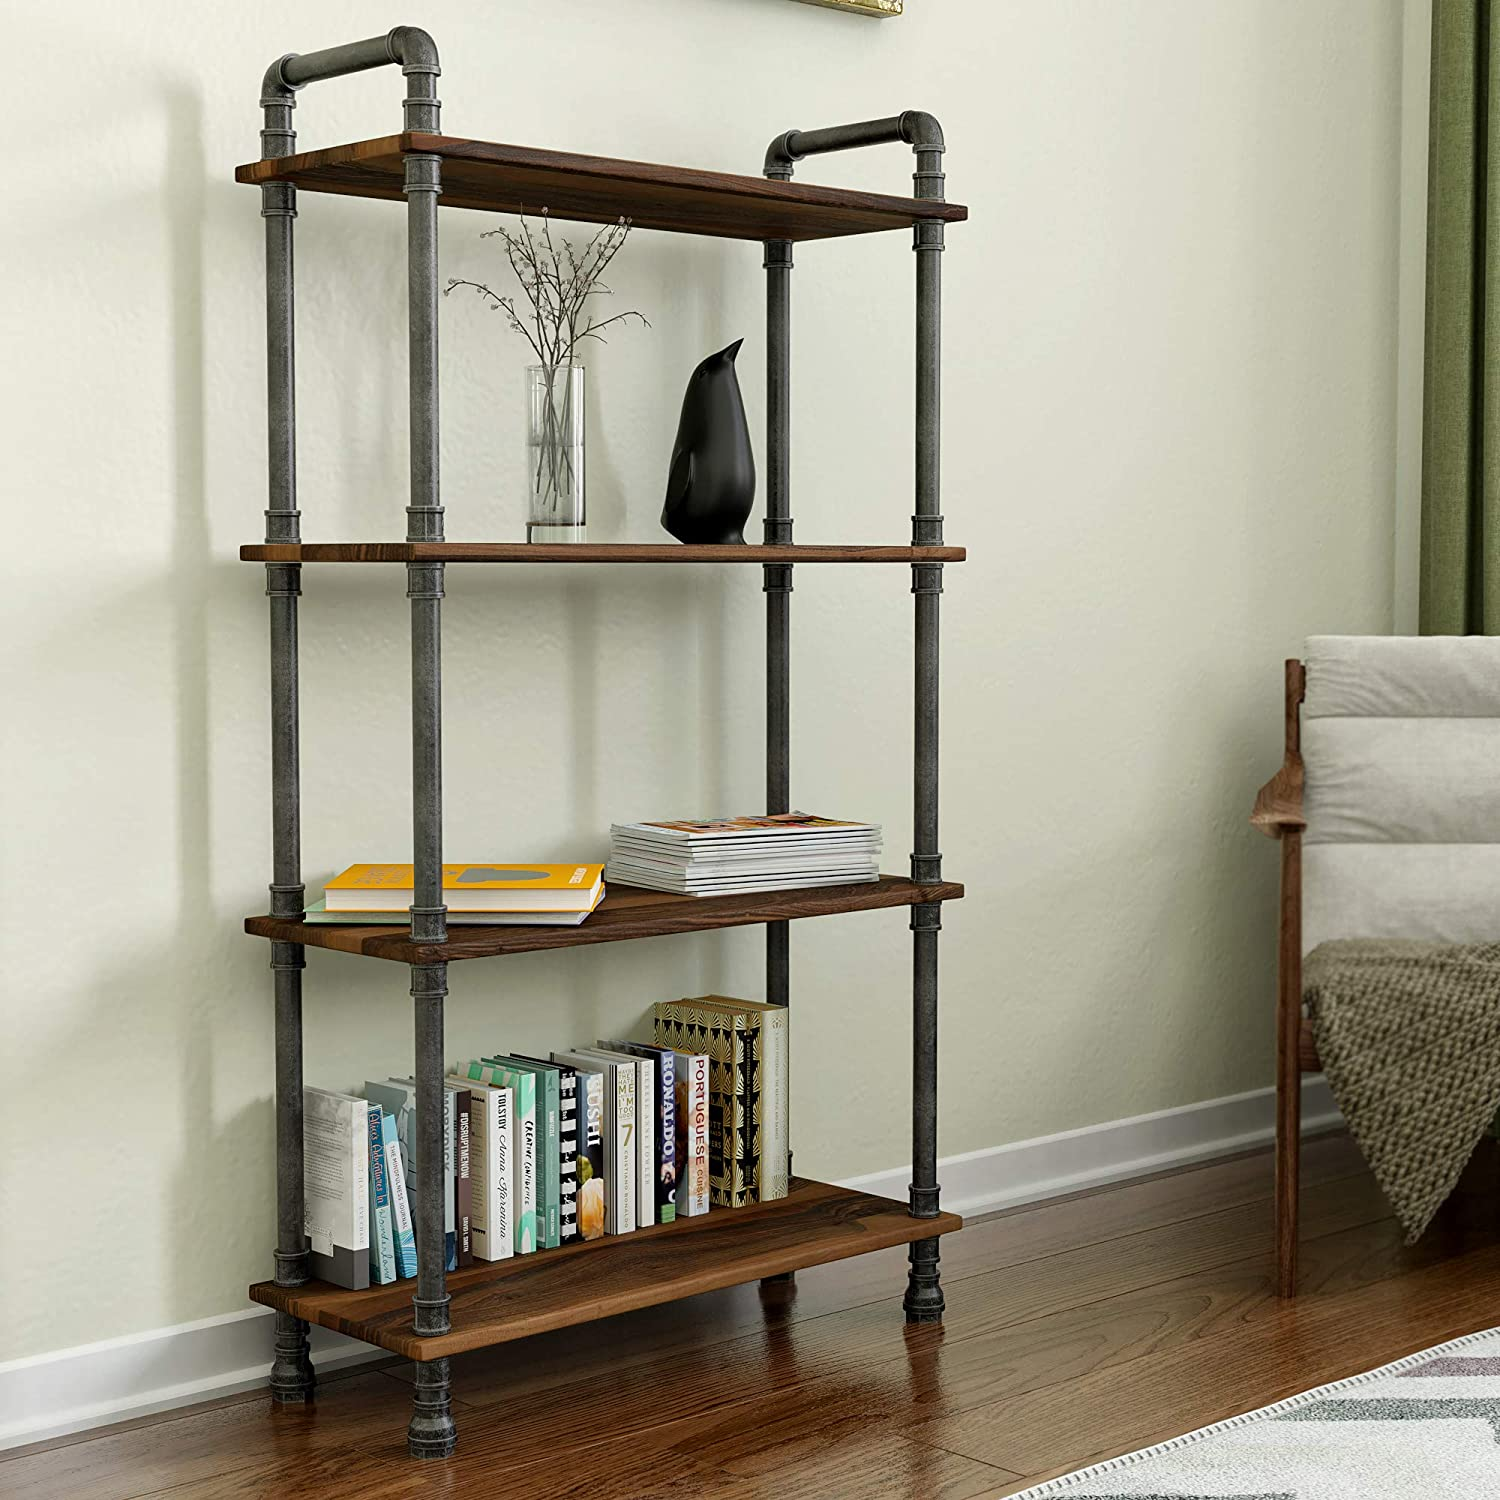 "Barnyard Designs Furniture 4-Tier Etagere Bookcase, Solid Pine Open Wood Shelves, Rustic Modern Industrial Metal and Wood Style Bookshelf, Brown, 55"" x 29.5"" x 11.75"""